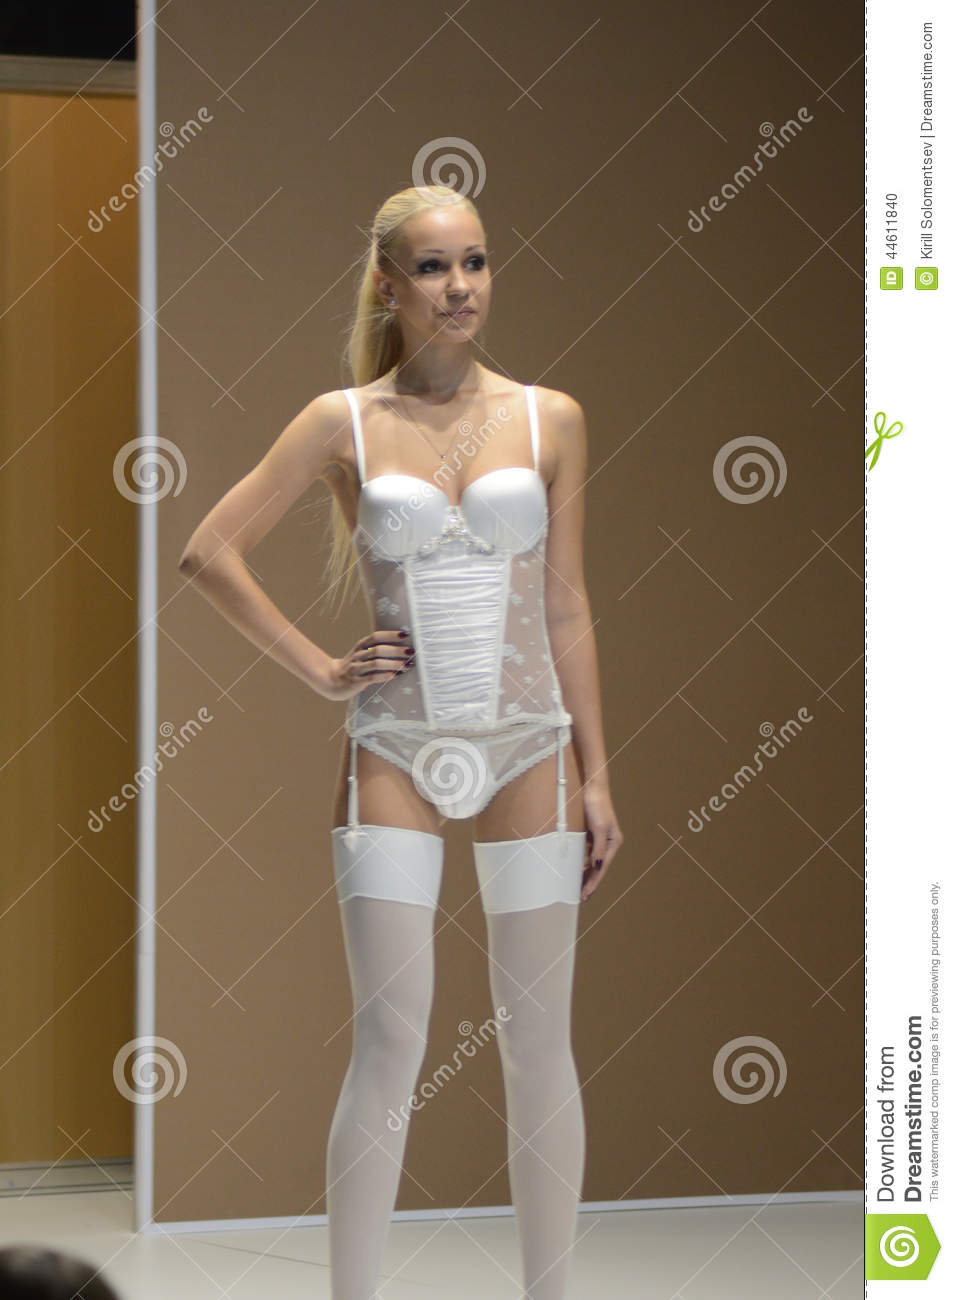 7b666d88f Lingrie Expo Fashion Show Young Woman In White Stockings And ...